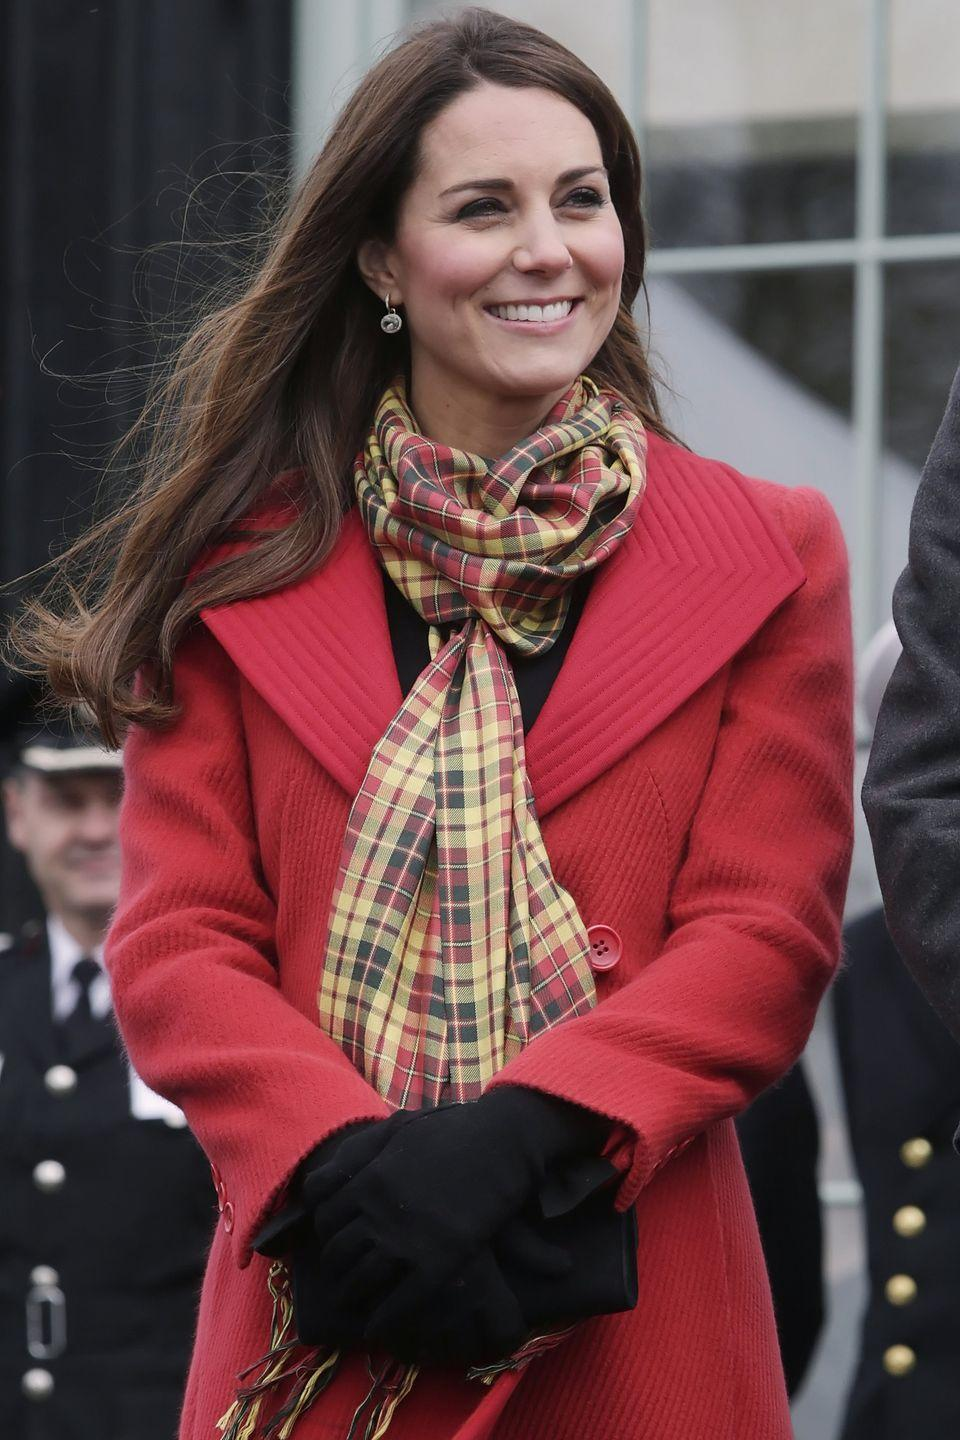 <p>Will and Kate also have their own tartan. Since their Scottish titles are the Earl and Countess of Strathearn, Kate has accessorized several outfits with this yellow and red Strathearn tartan scarf.</p>